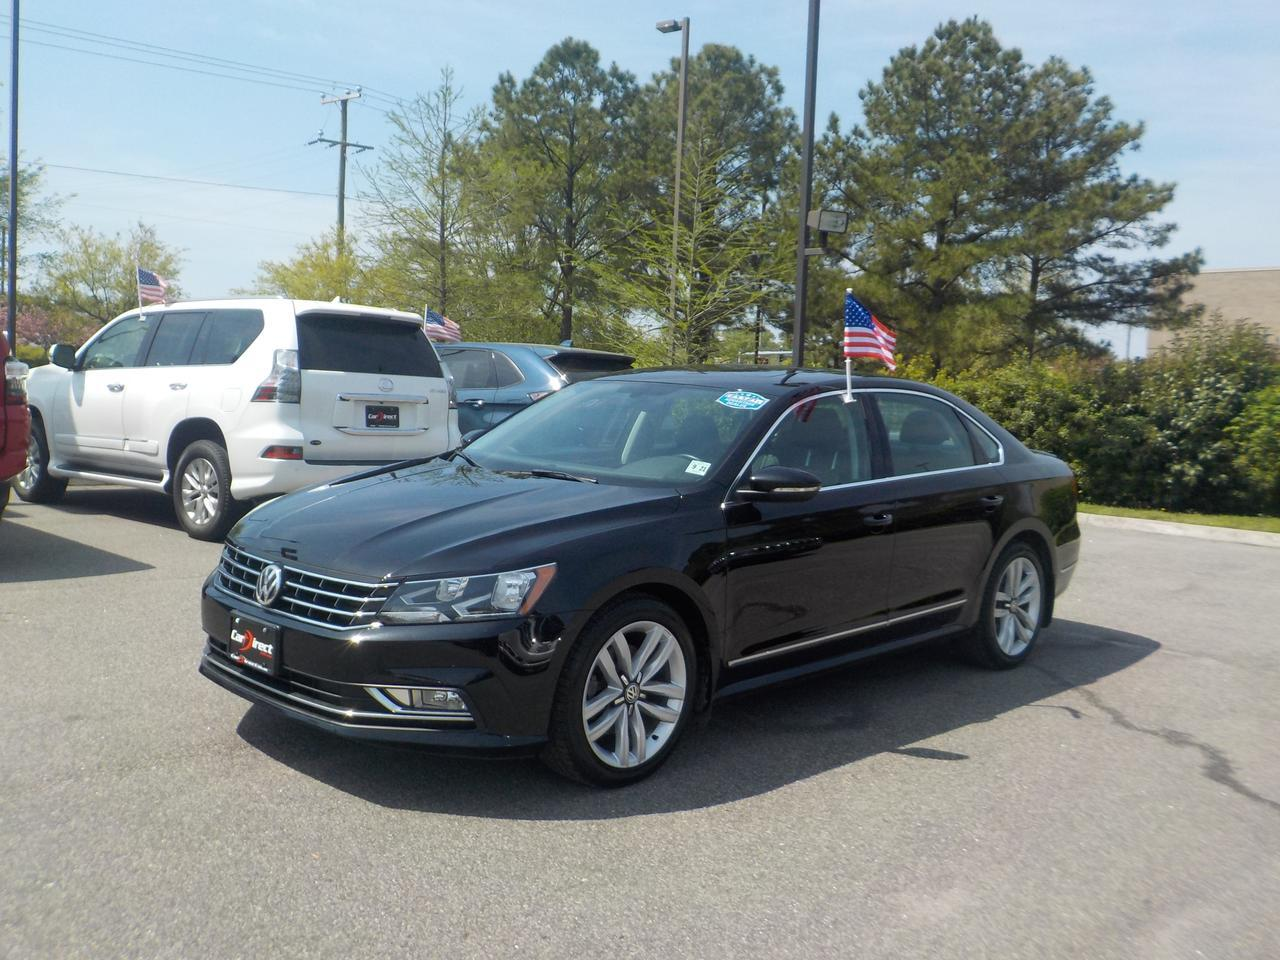 2016 VOLKSWAGEN PASSAT SEL TSI, ONE OWNER, SUNROOF, NAVIGATION, BLUETOOTH, HEATED LEATHER SEATS, ONLY 63K MILES!! Virginia Beach VA